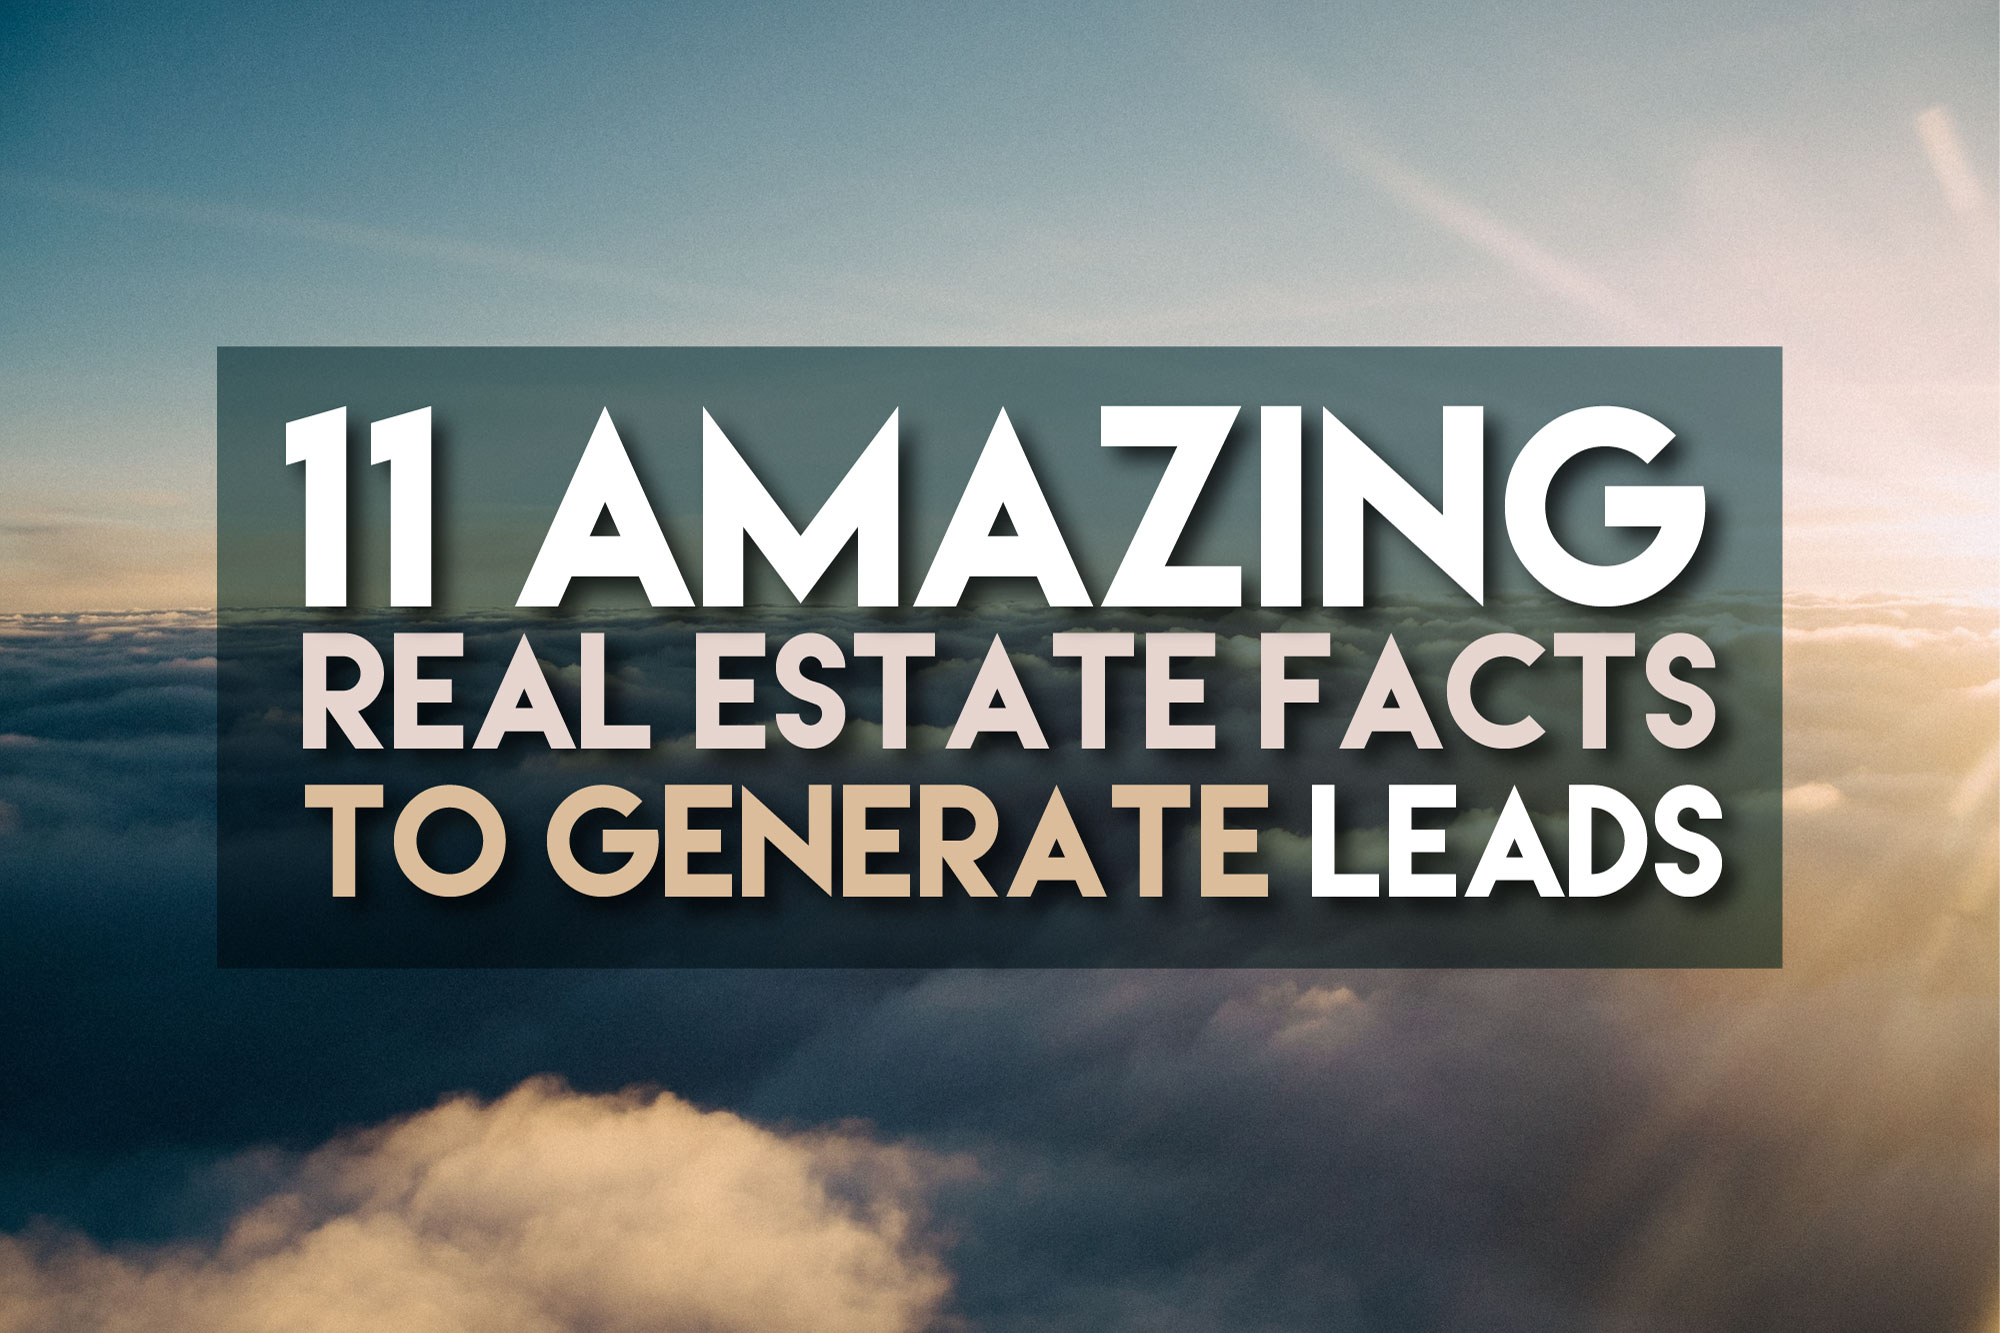 amazing real estate face to generate leads